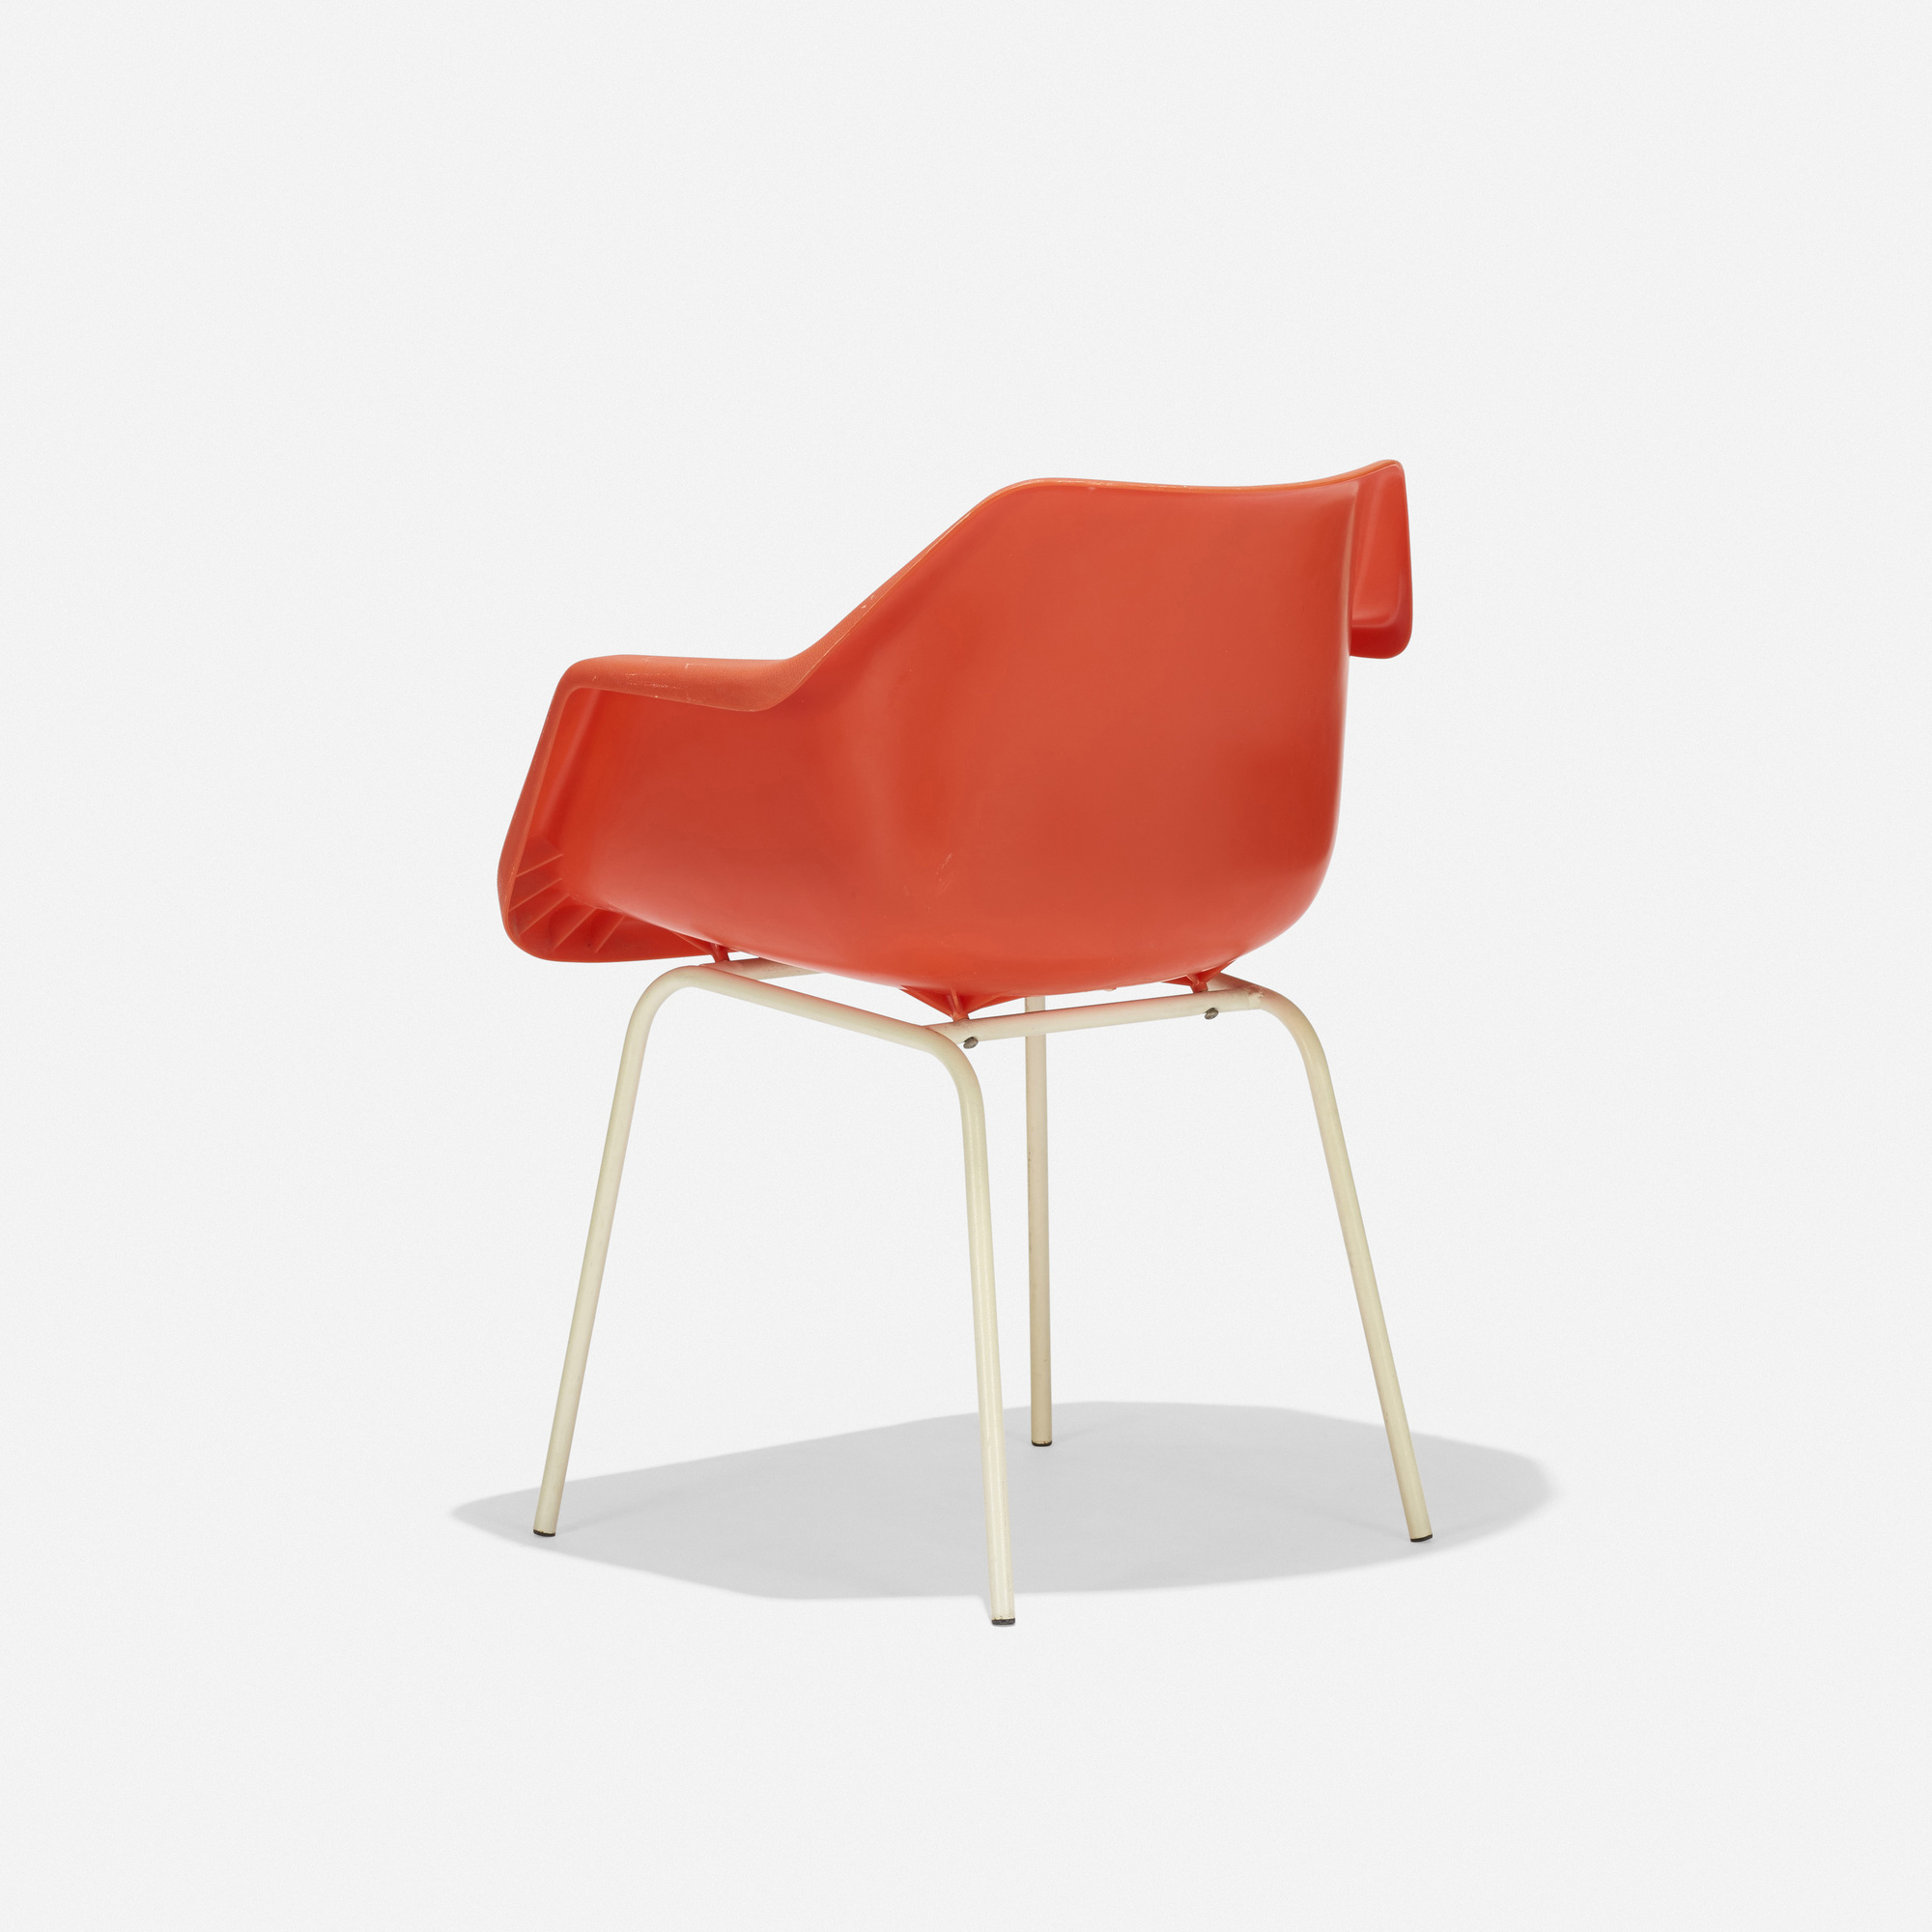 210: Robin Day / armchair (3 of 4)